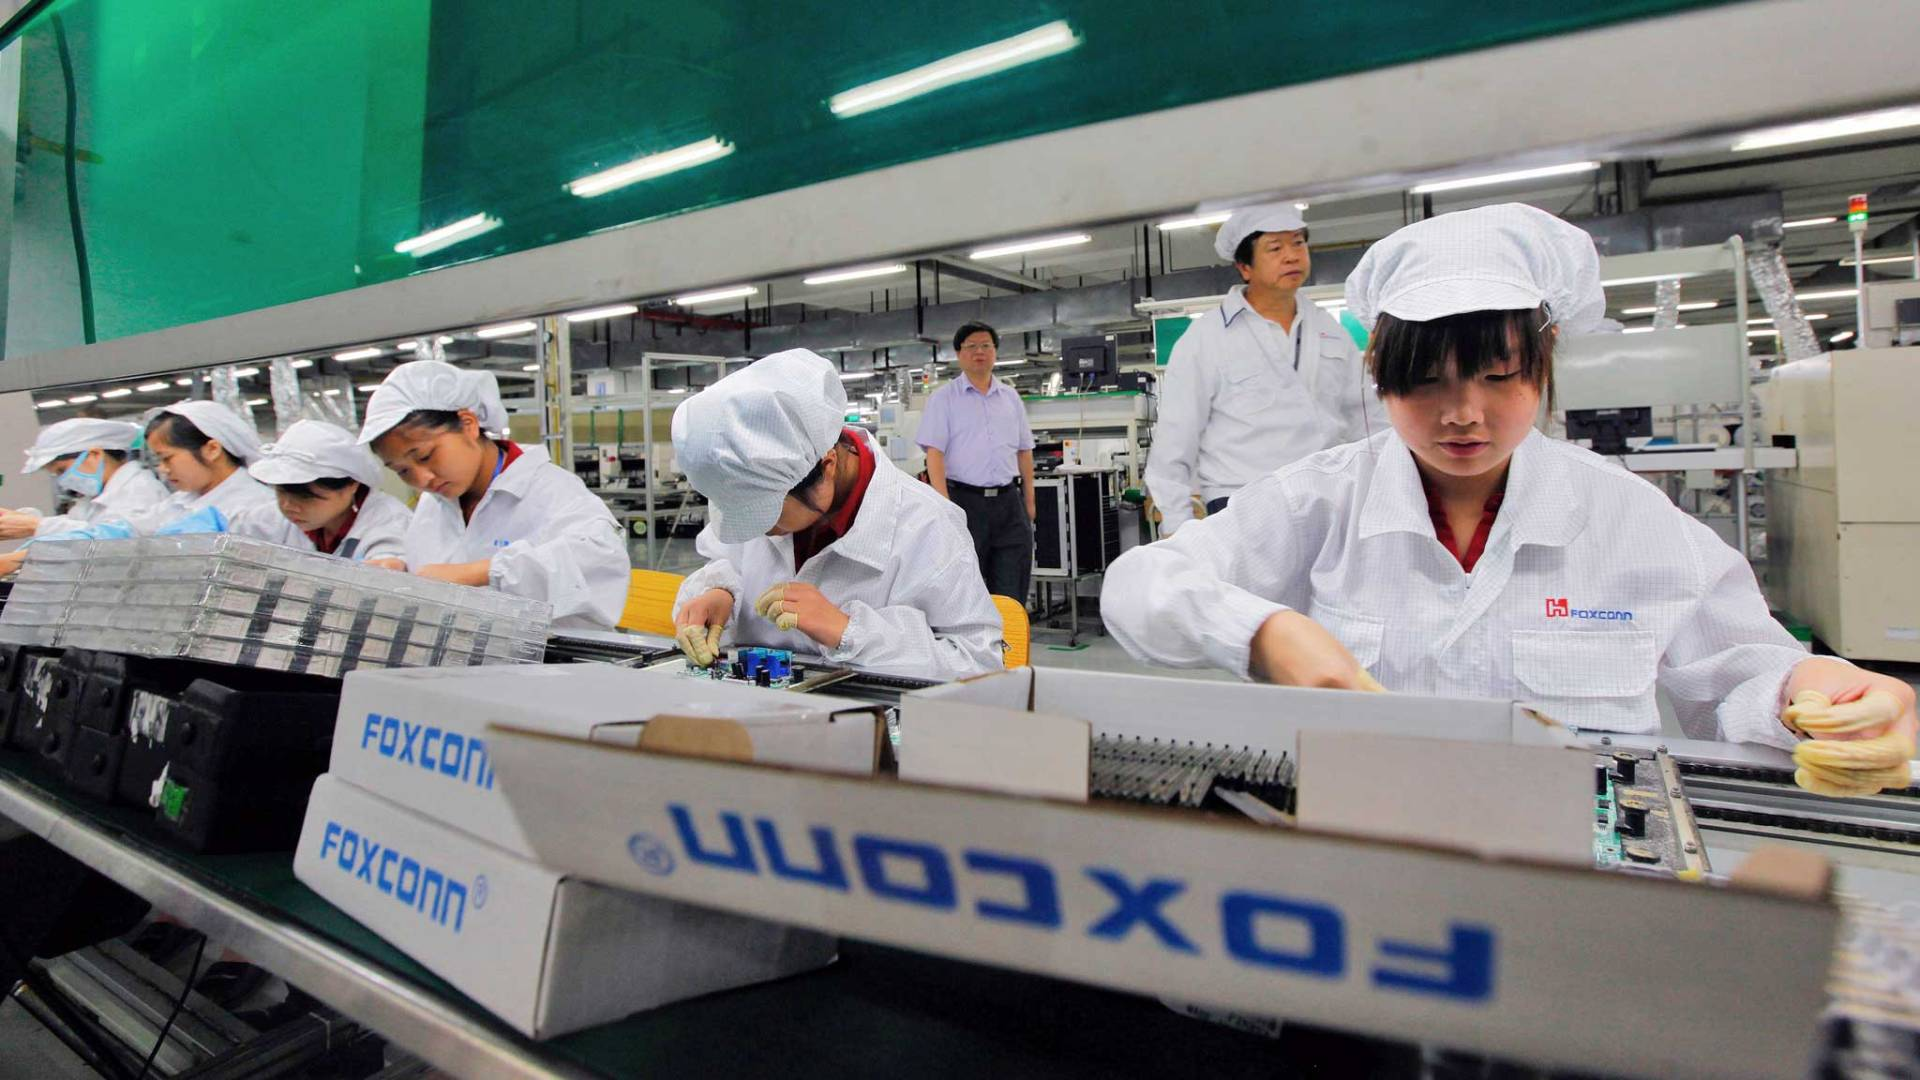 Foxconn plans to create up to 400,000 new jobs